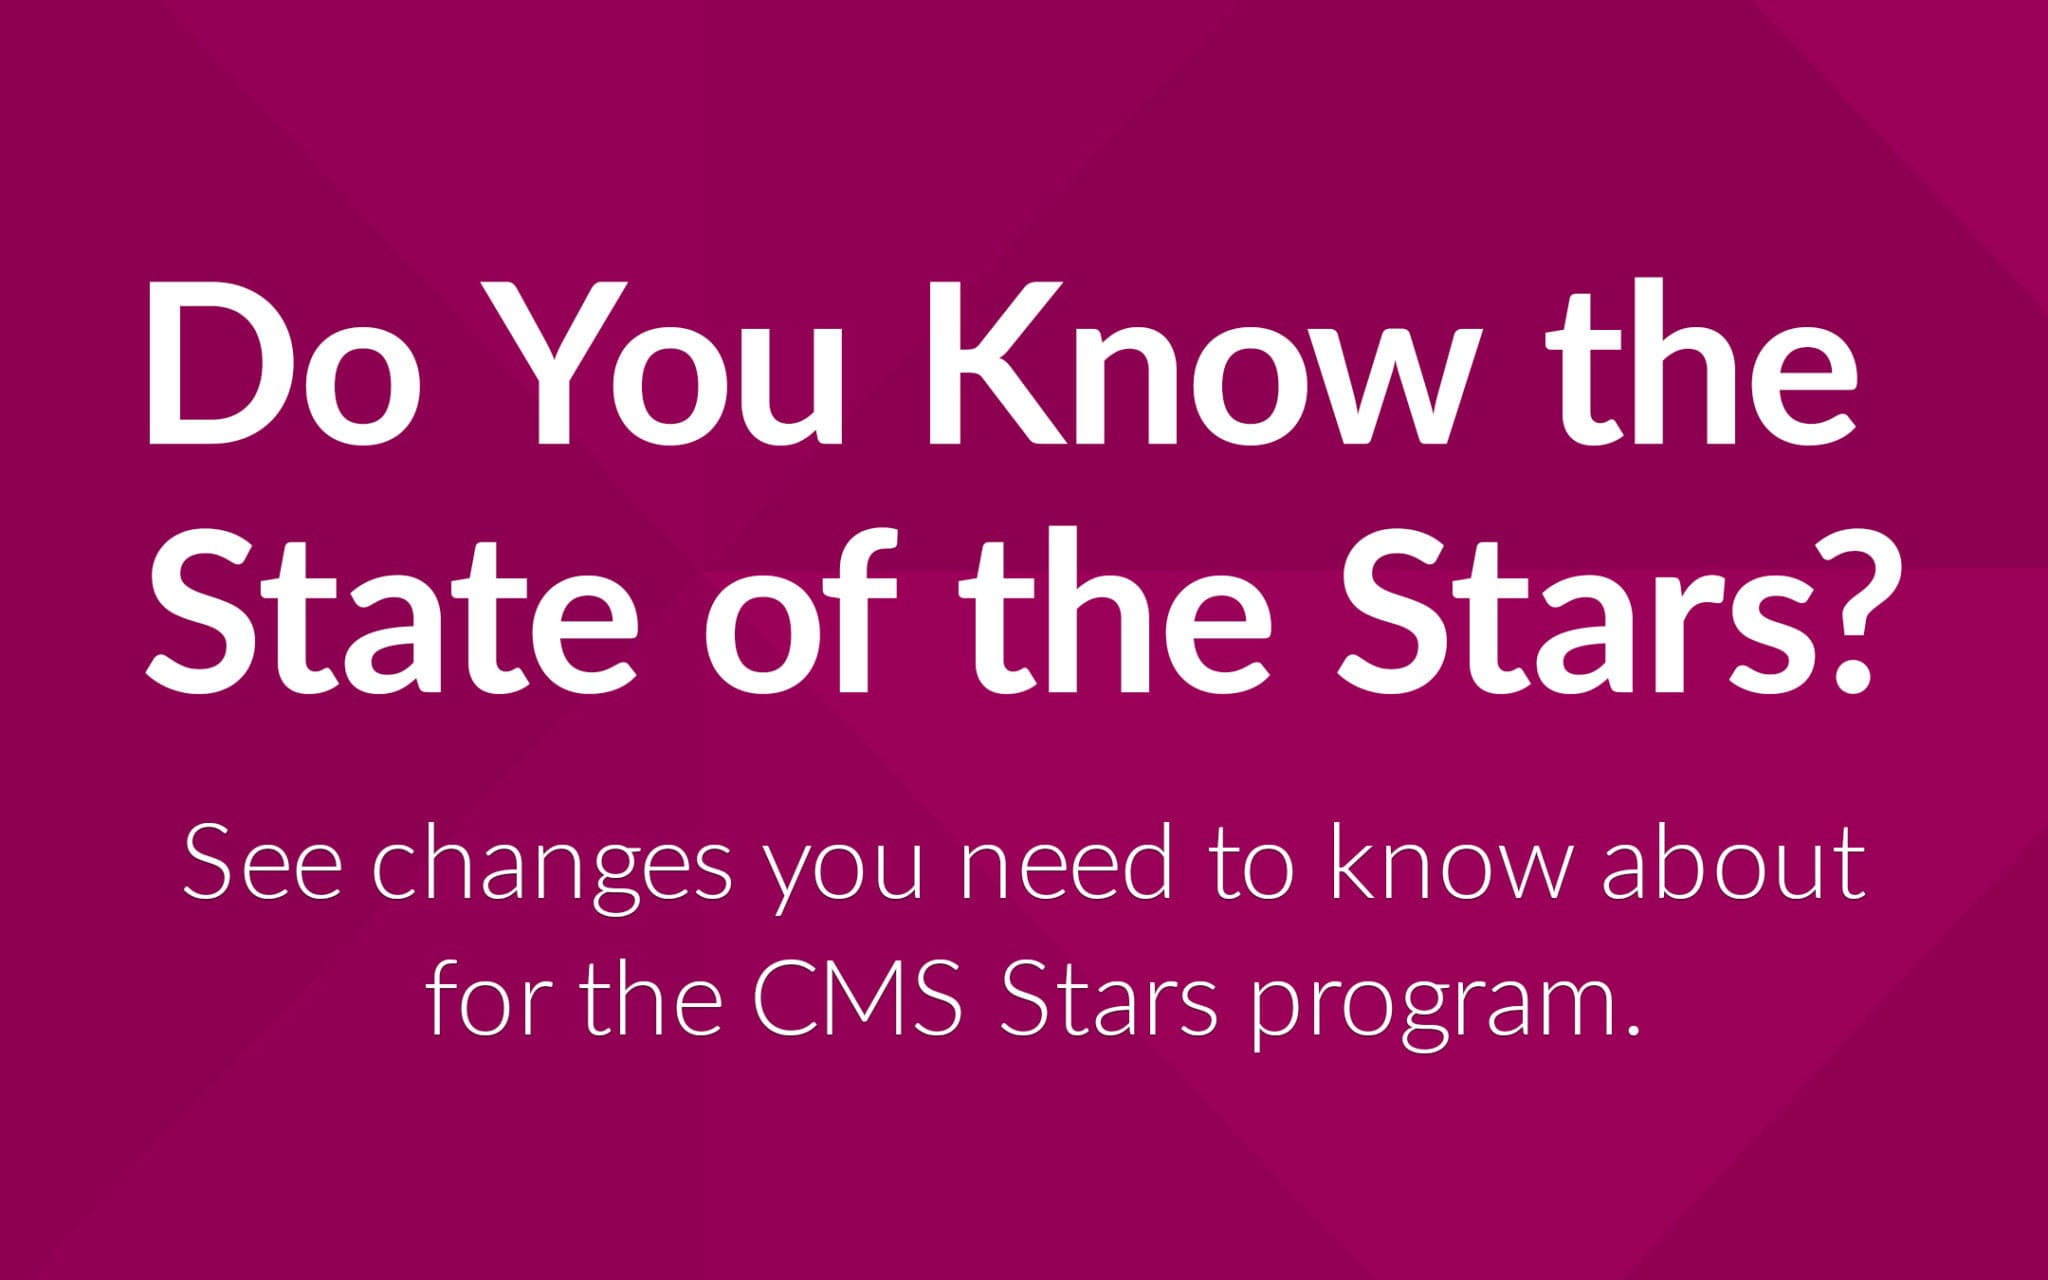 CMS Stars Update for Medicare Advantage plans February 2020 image